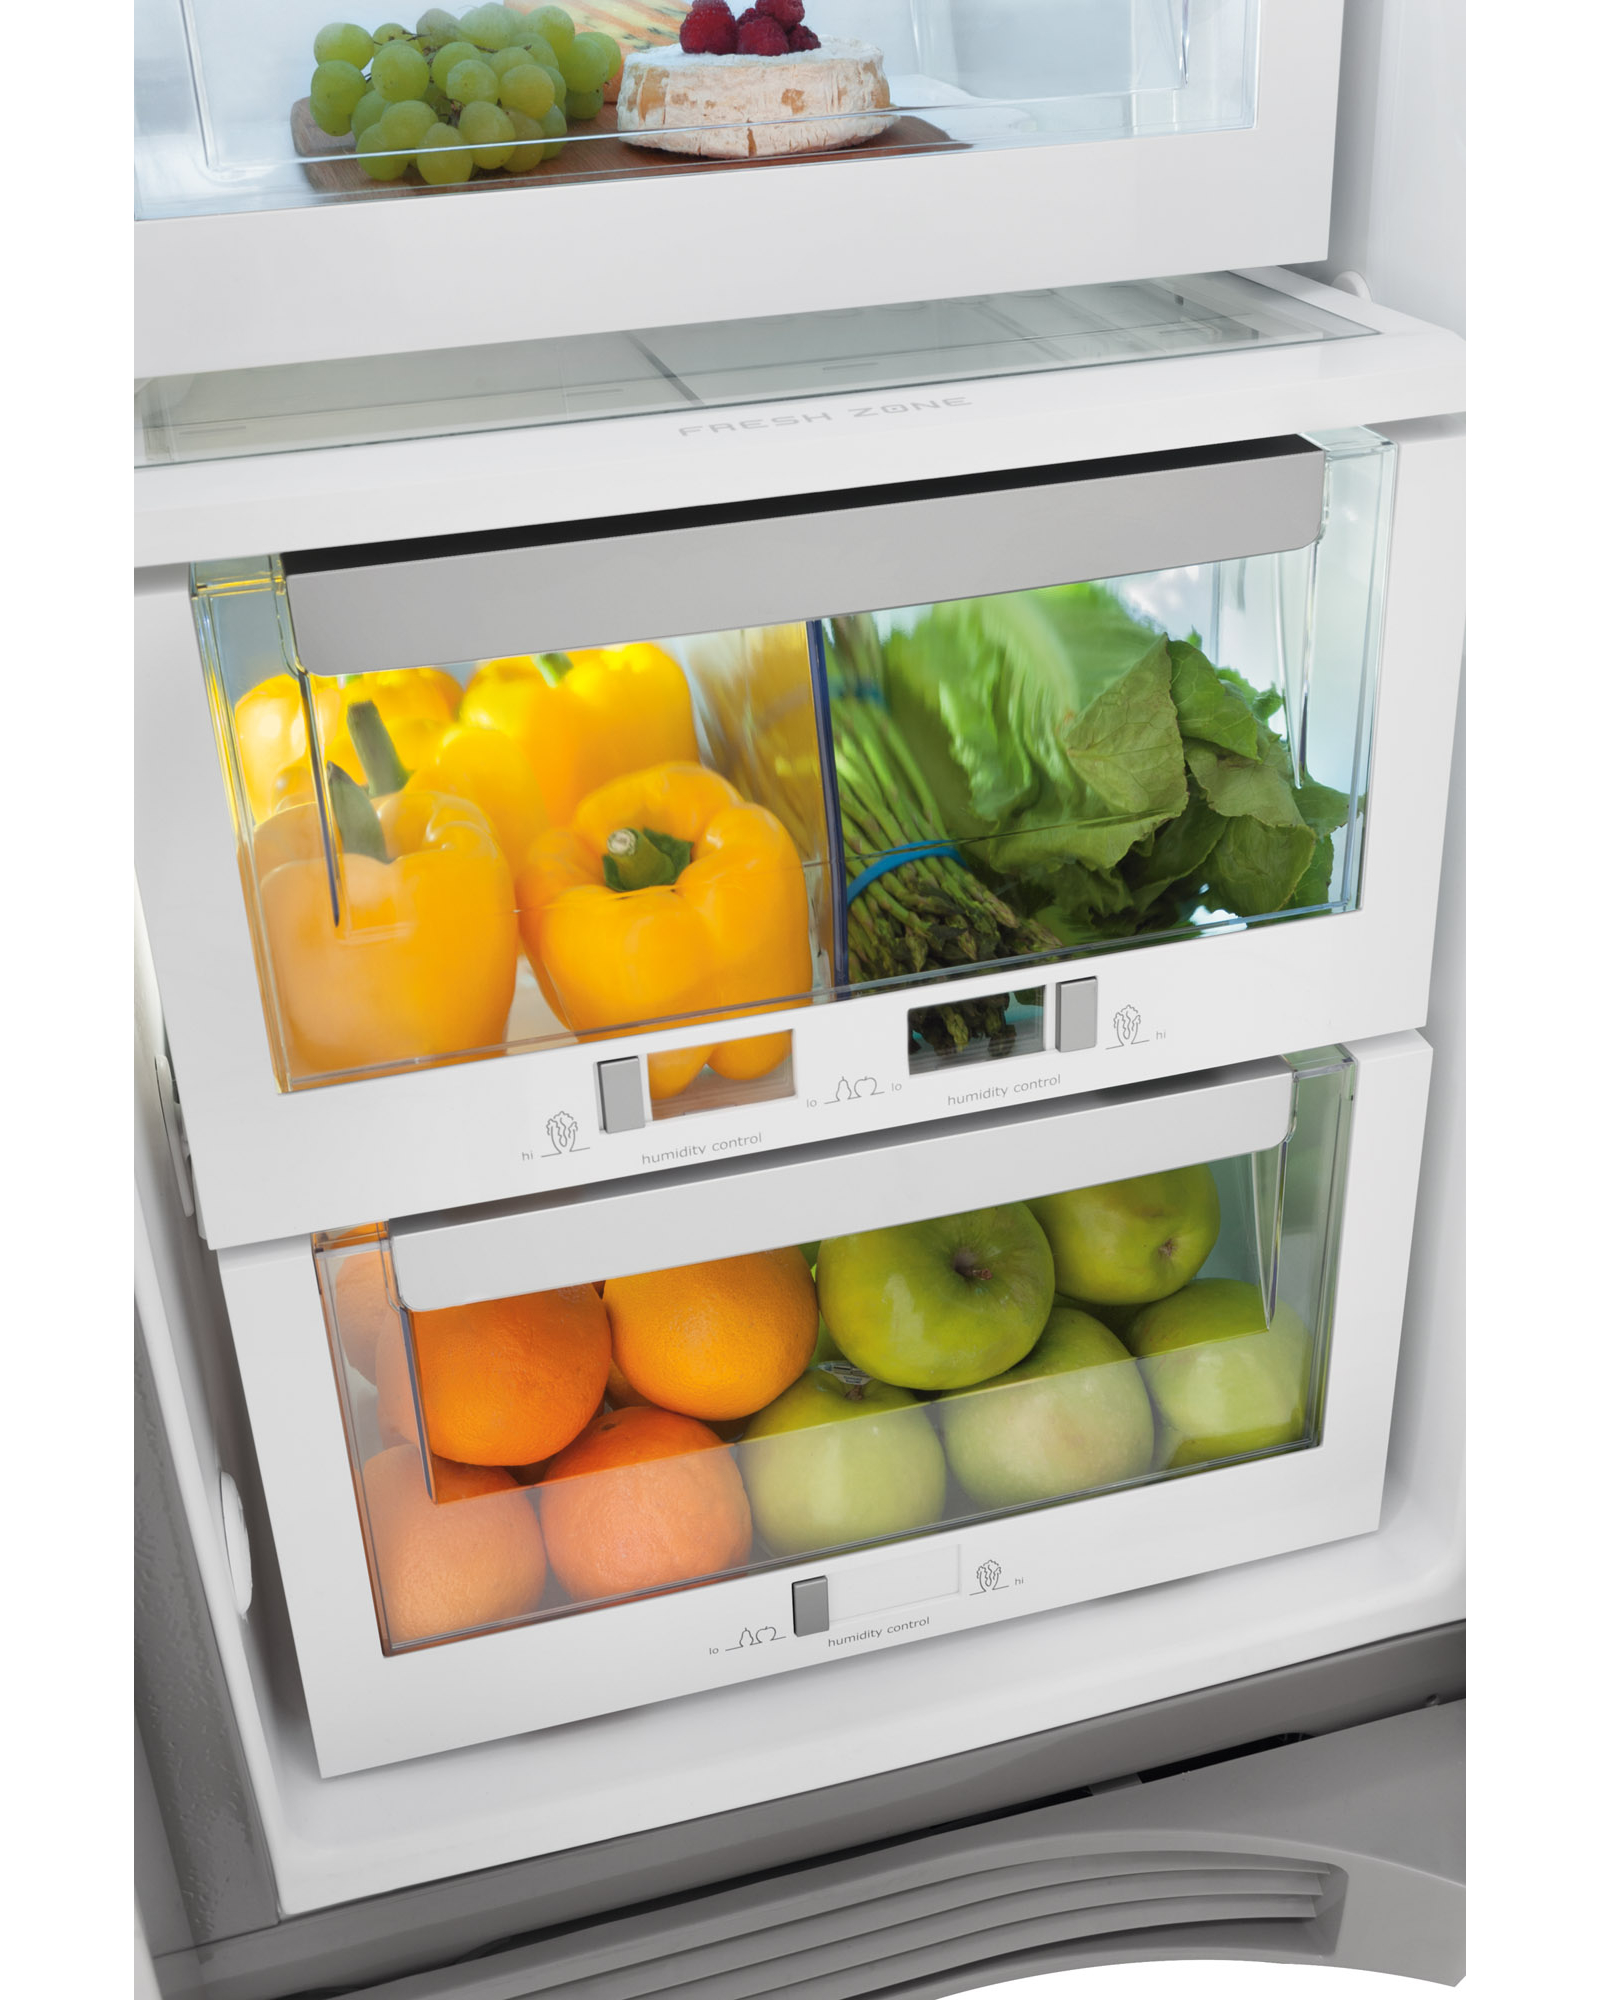 Electrolux 22.6 cu. ft. Counter-Depth Side-By-Side Refrigerator with Wave-Touch® Controls - Stainless Steel